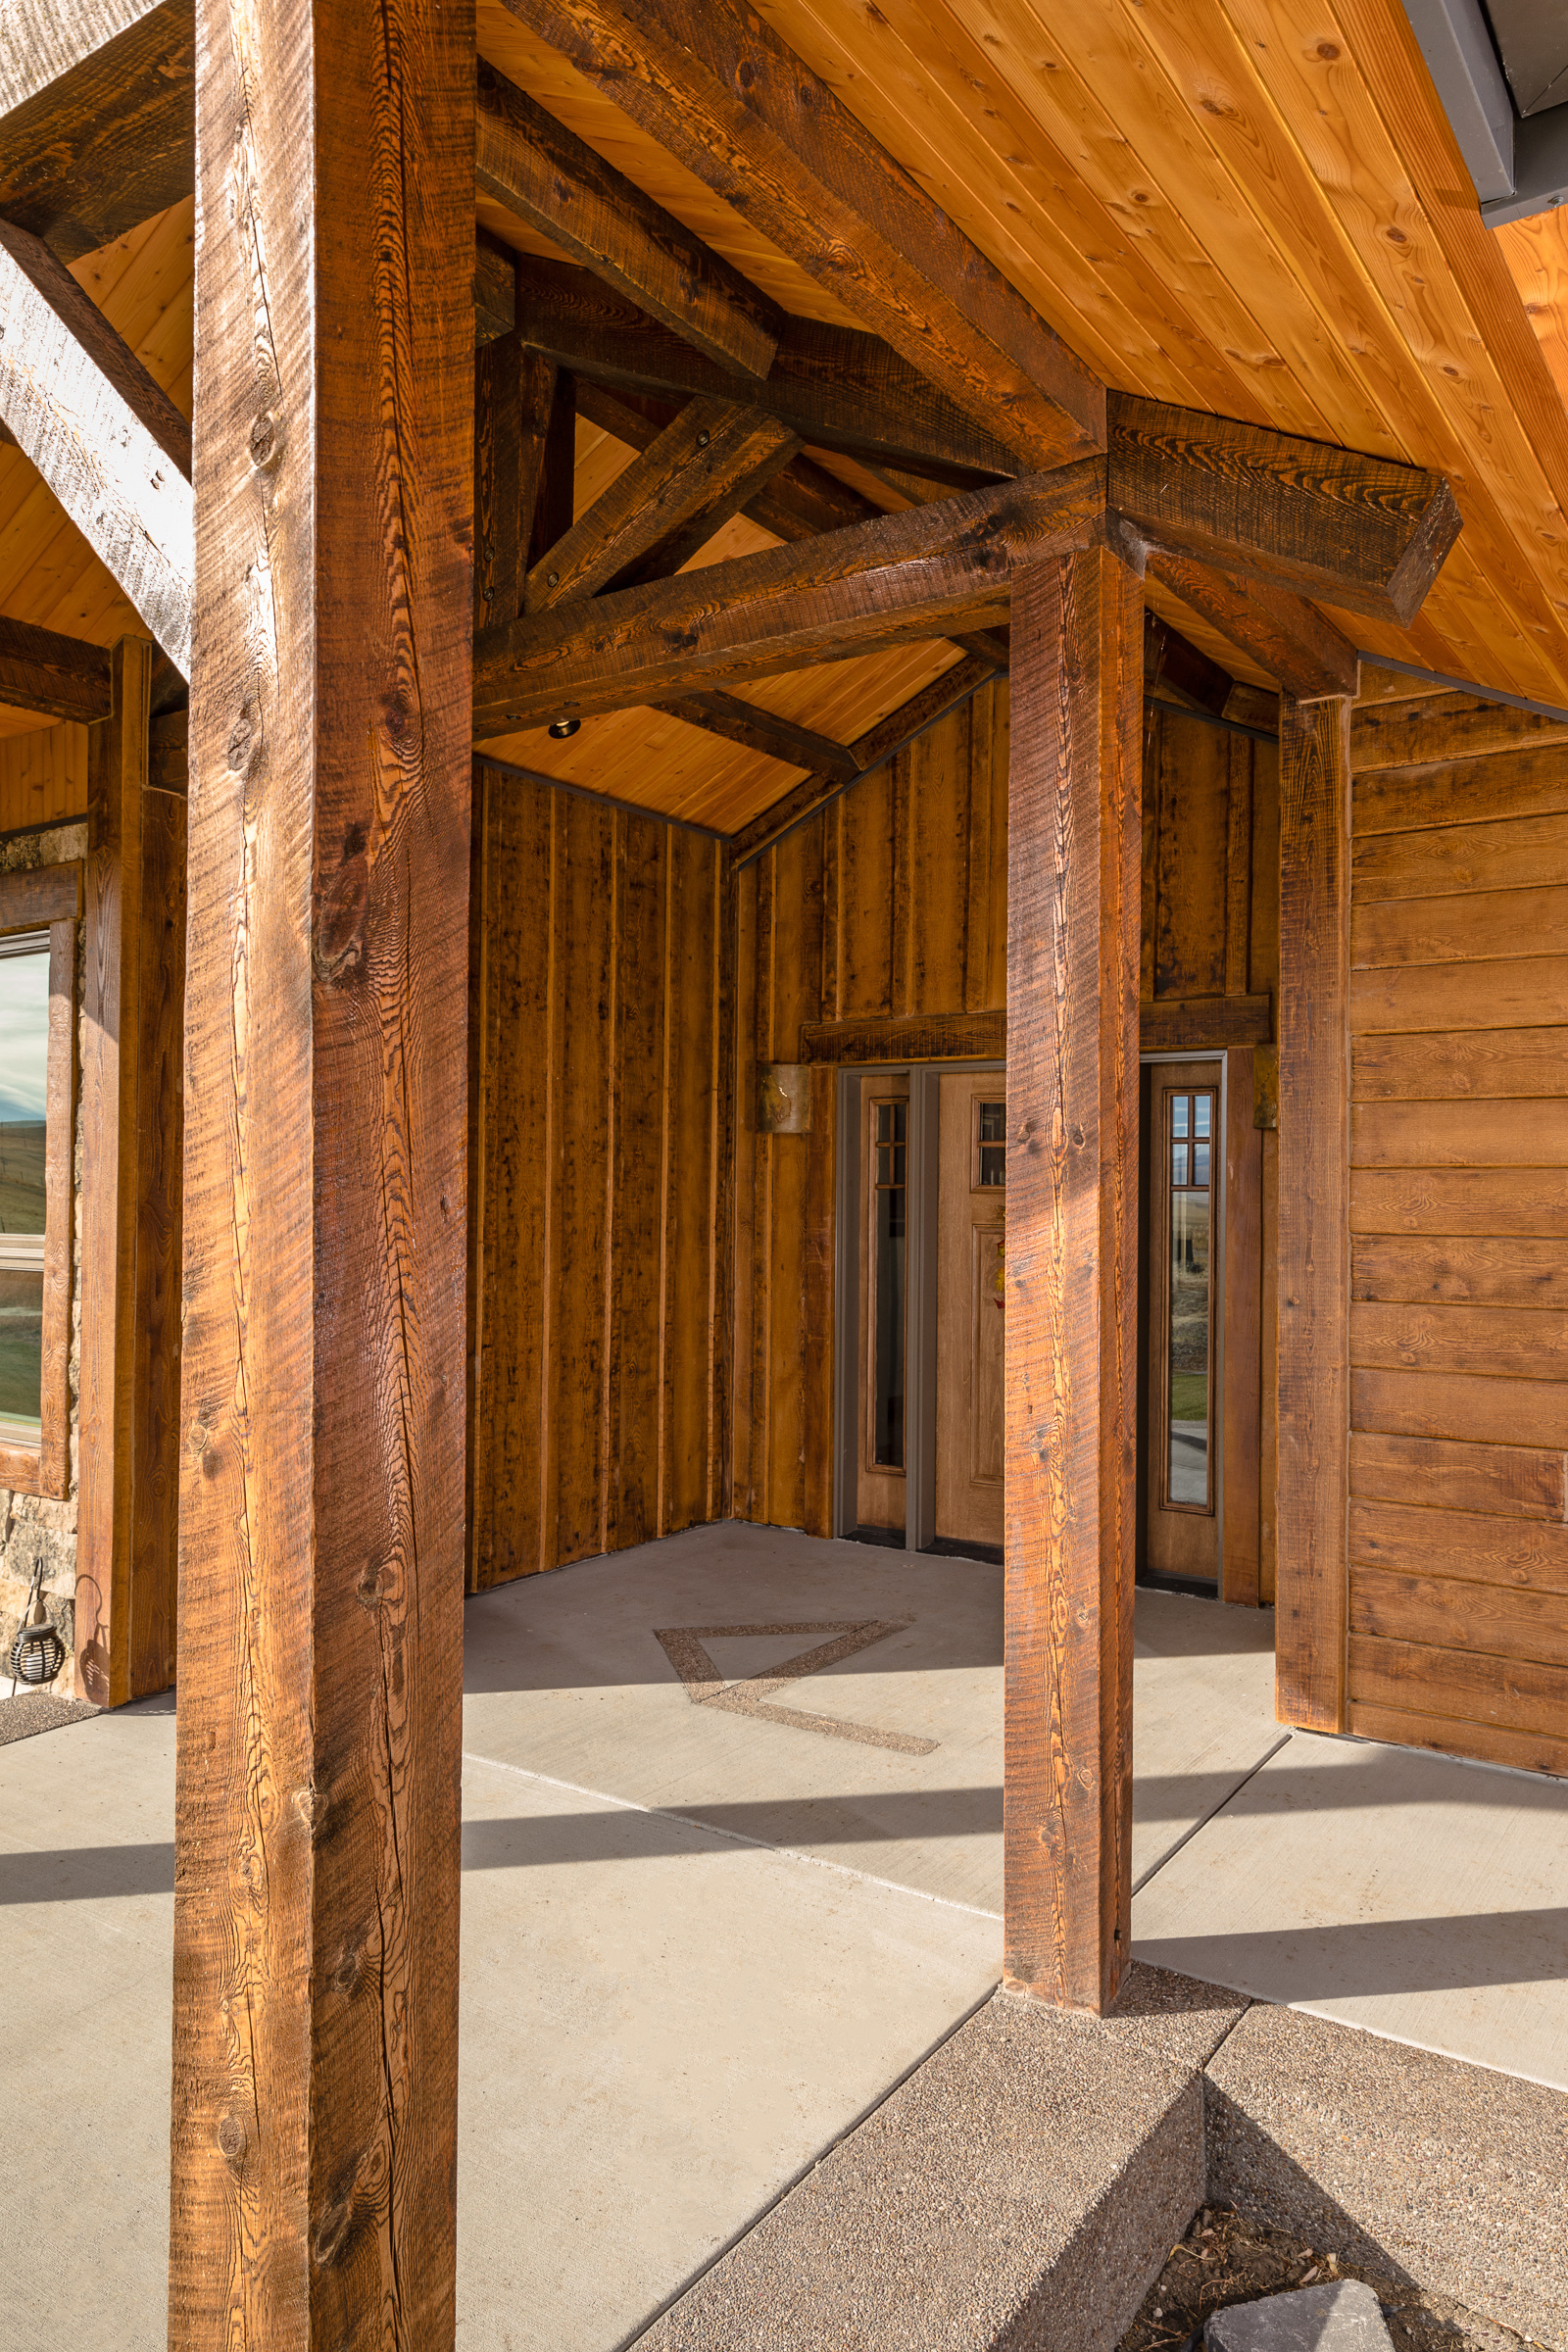 The Benefits Of Engaging A Quality Timber Frame